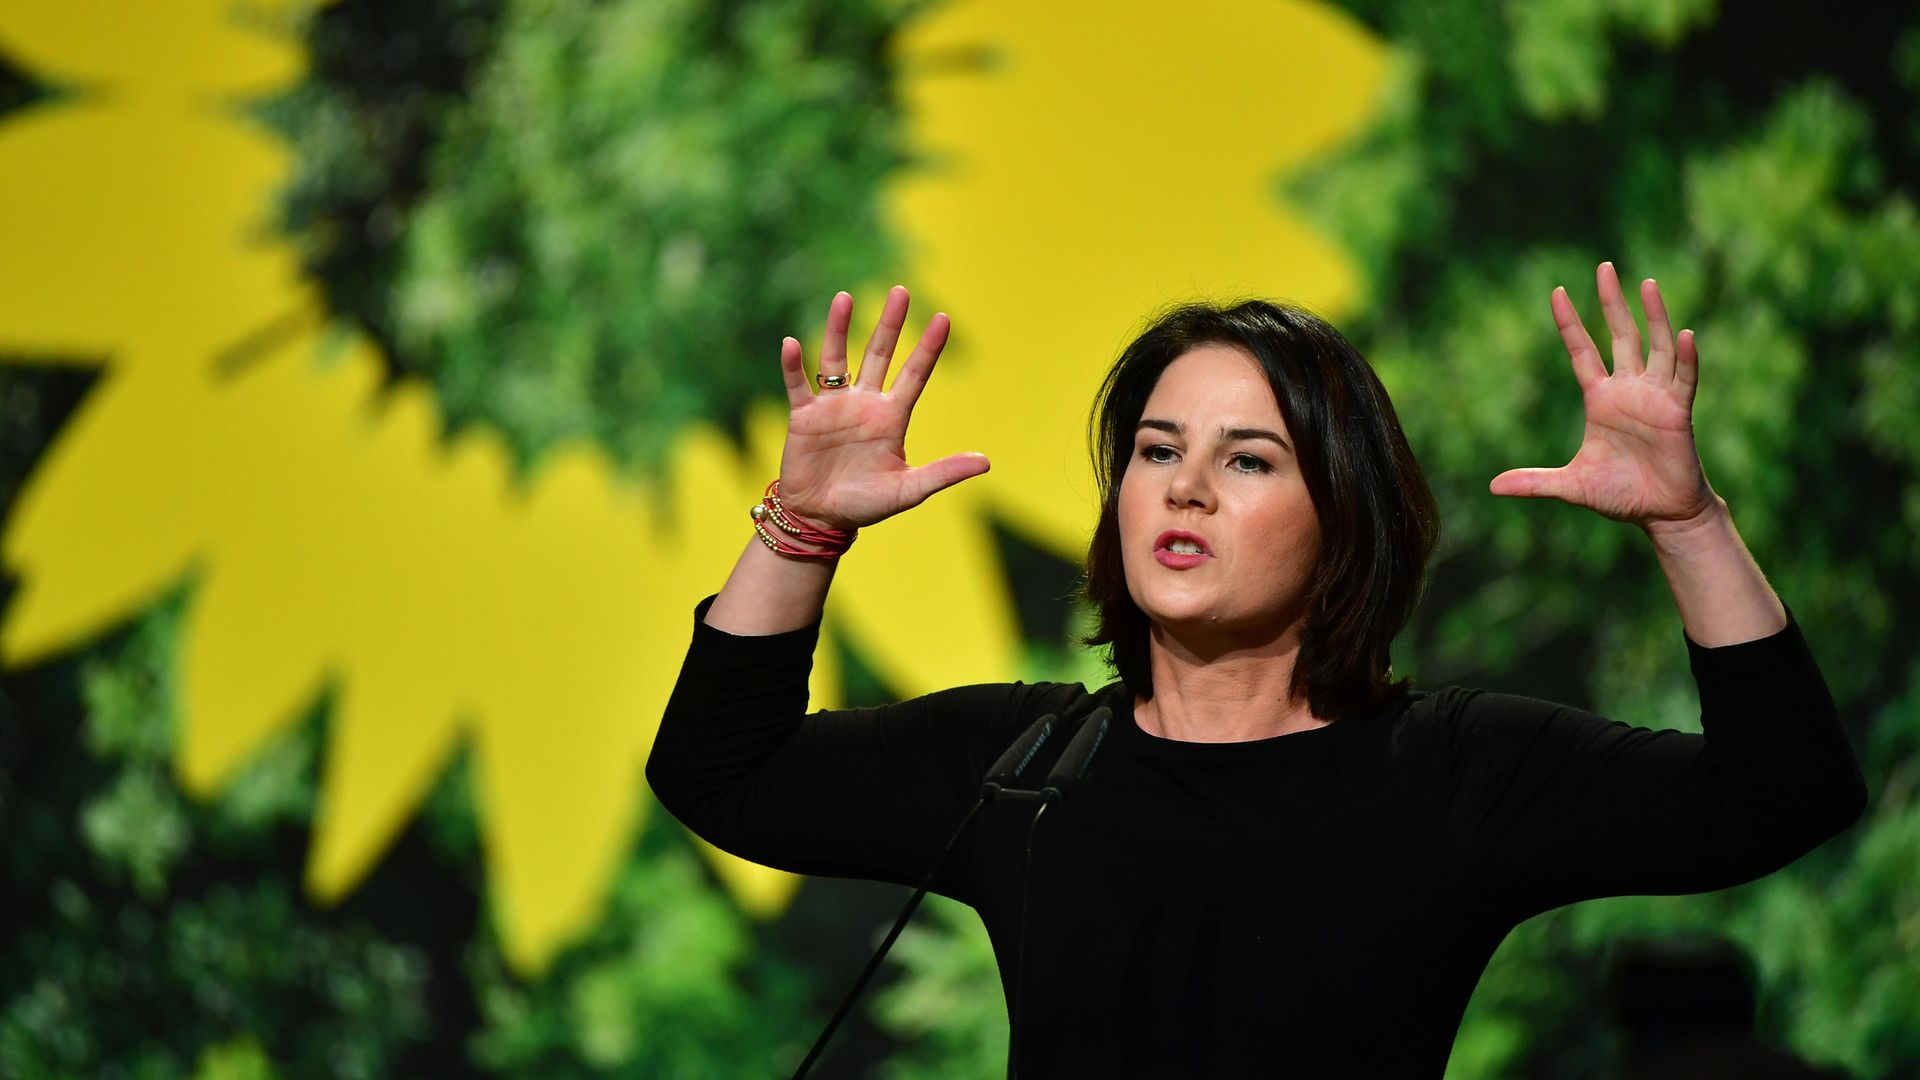 Annalena Baerbock delivers a speech at Germany's Green Party conference in 2019 - Credit: Getty Images